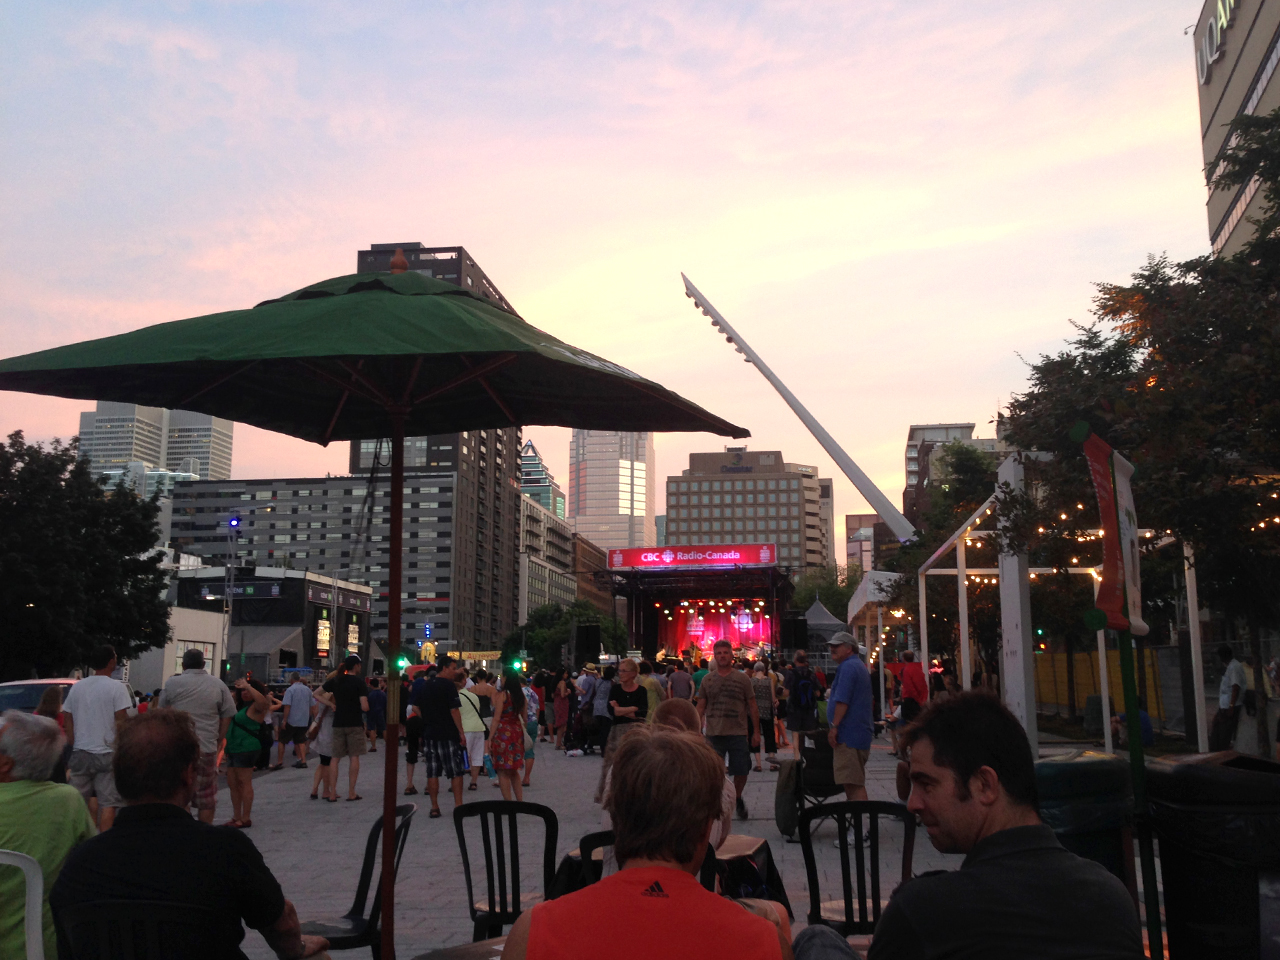 Jazzfest outdoors in Place-des-arts